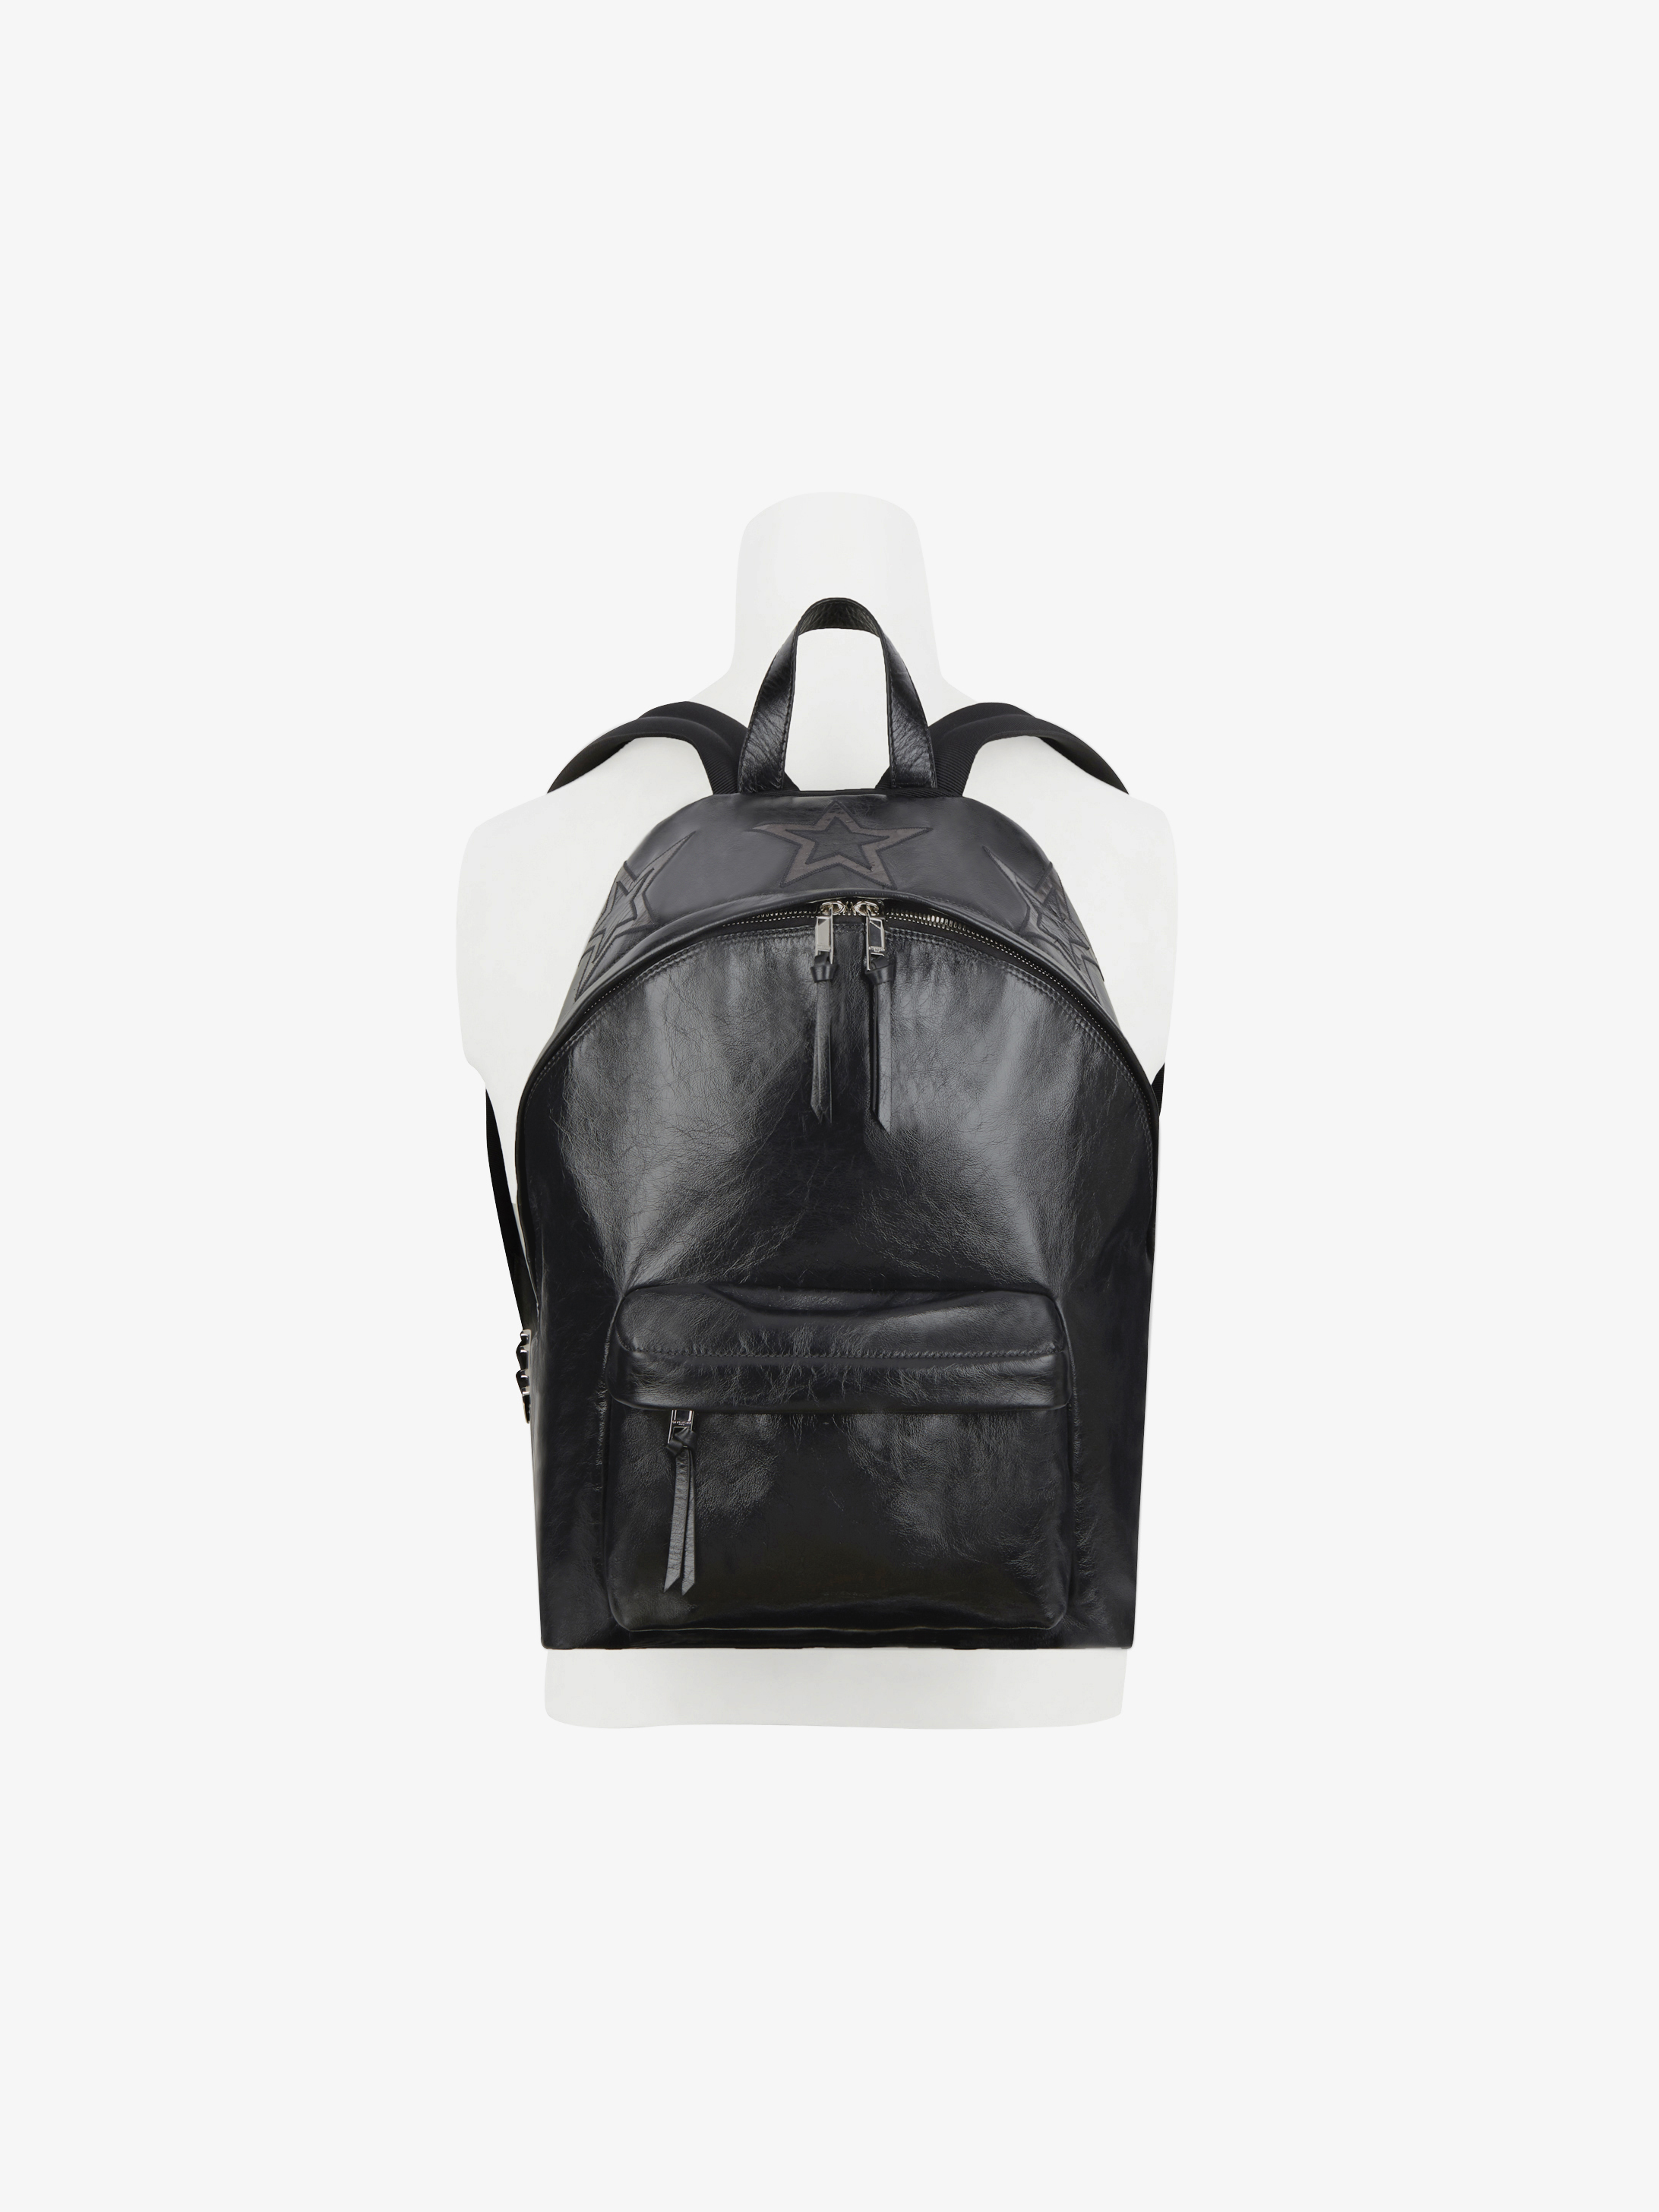 Stars backpack in shiny leather